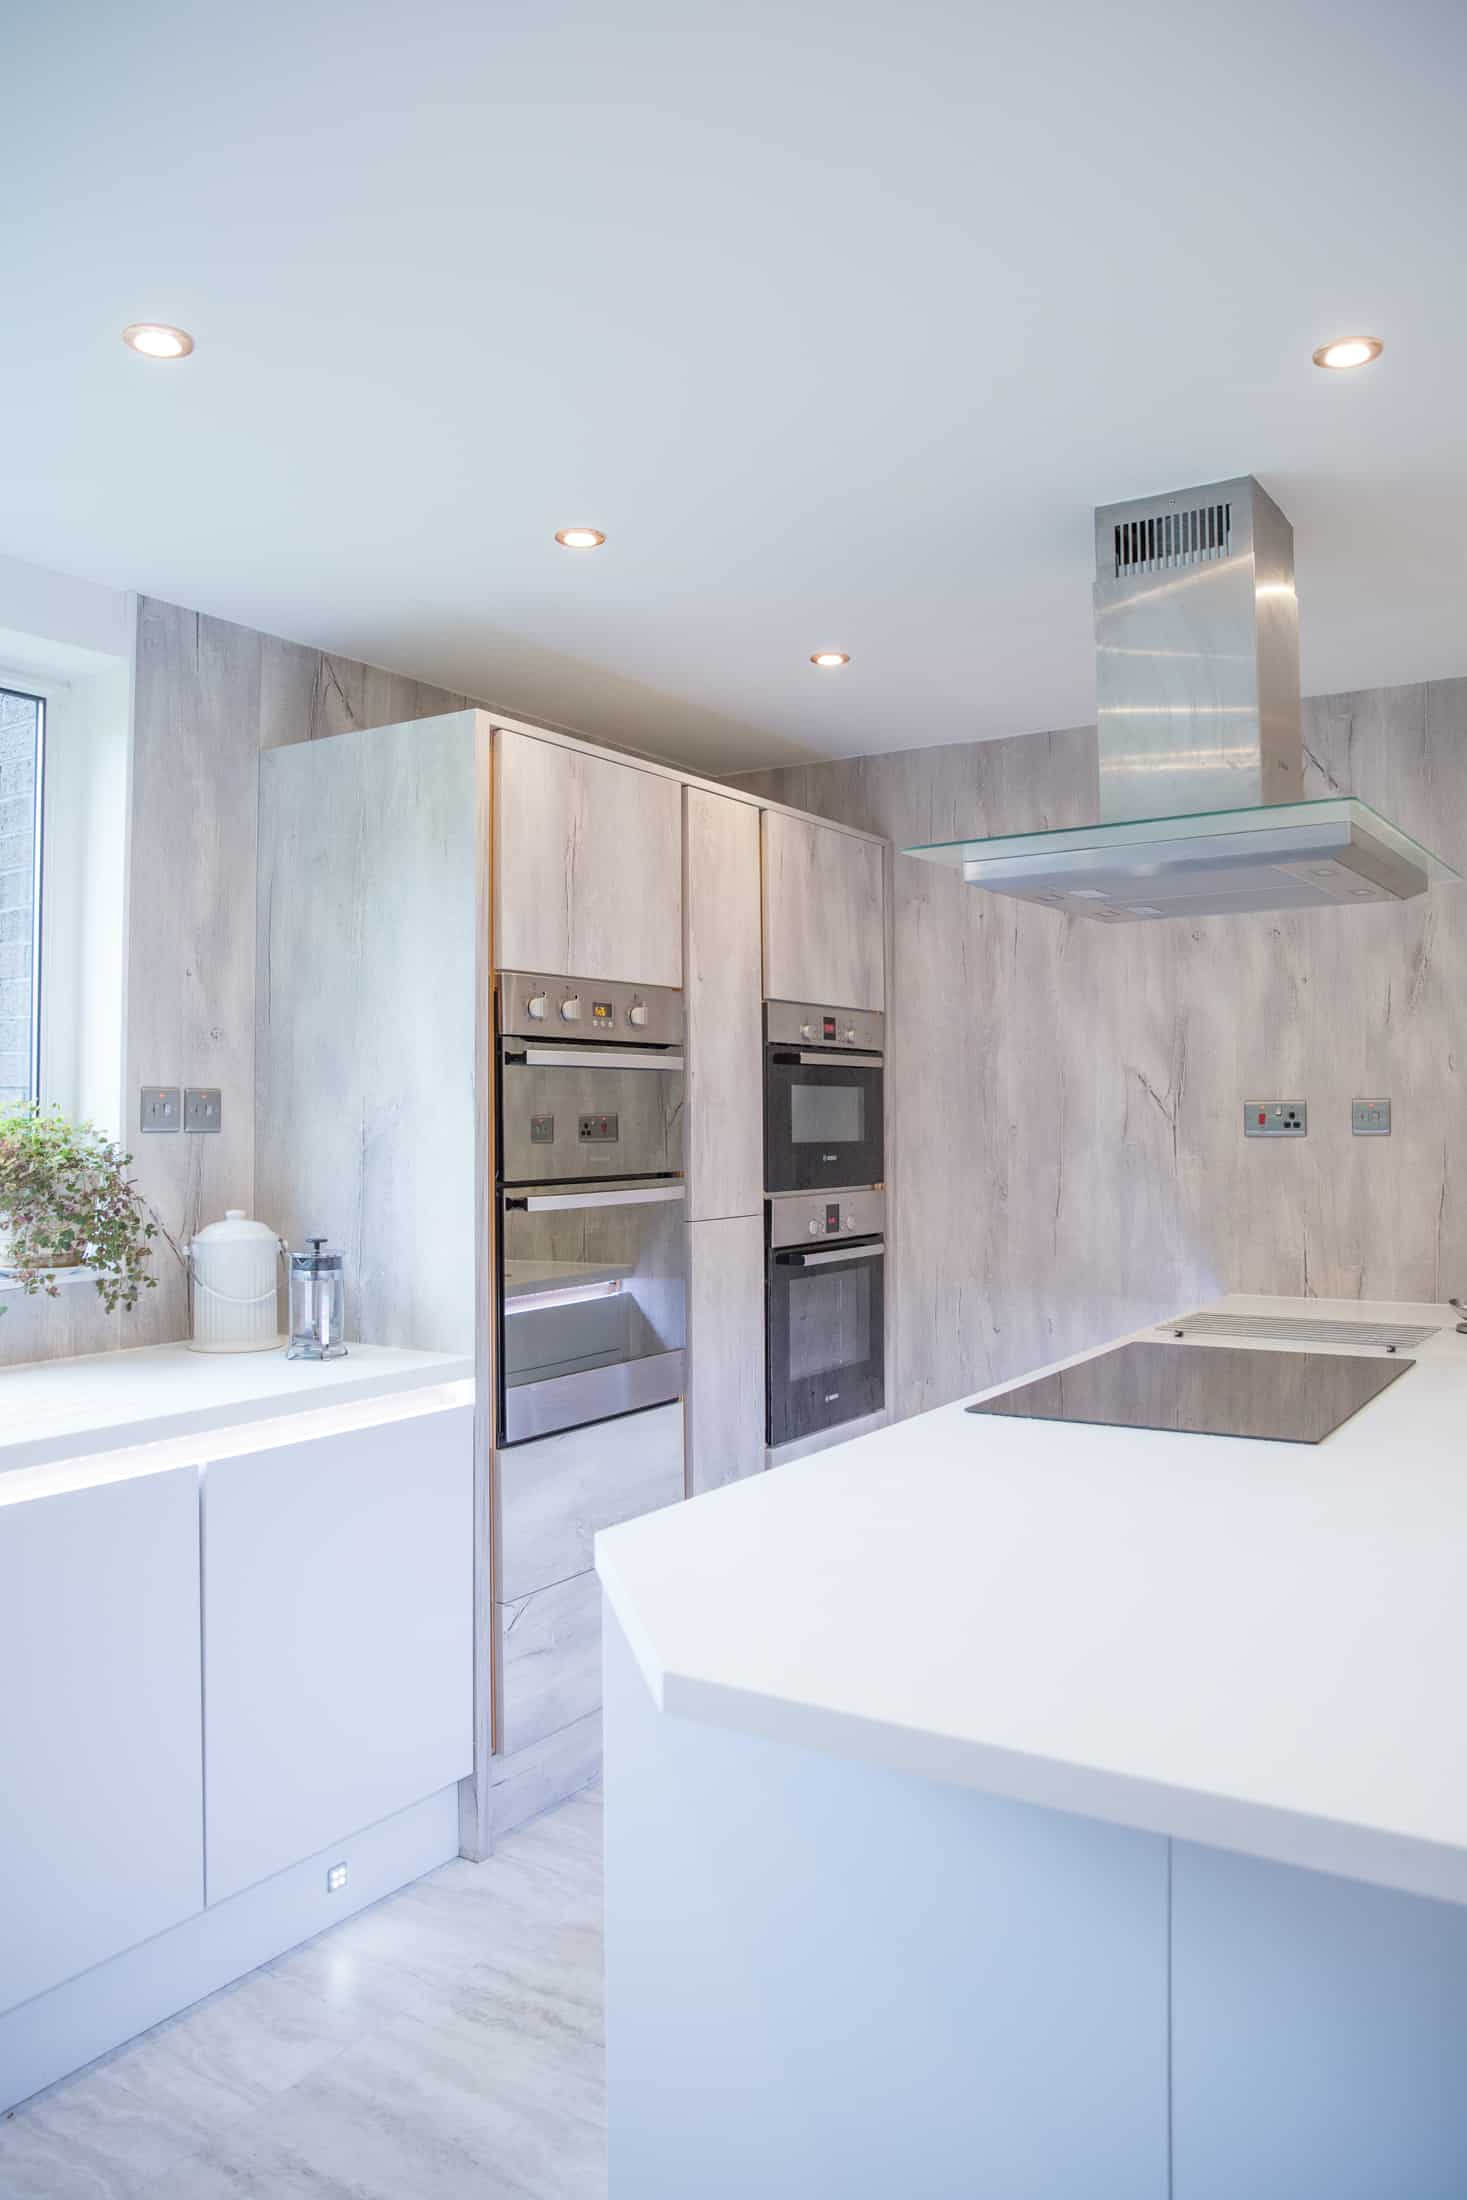 bright kitchen, fully equipped and renovated by a renovation company from Glasgow - FIX LTD,